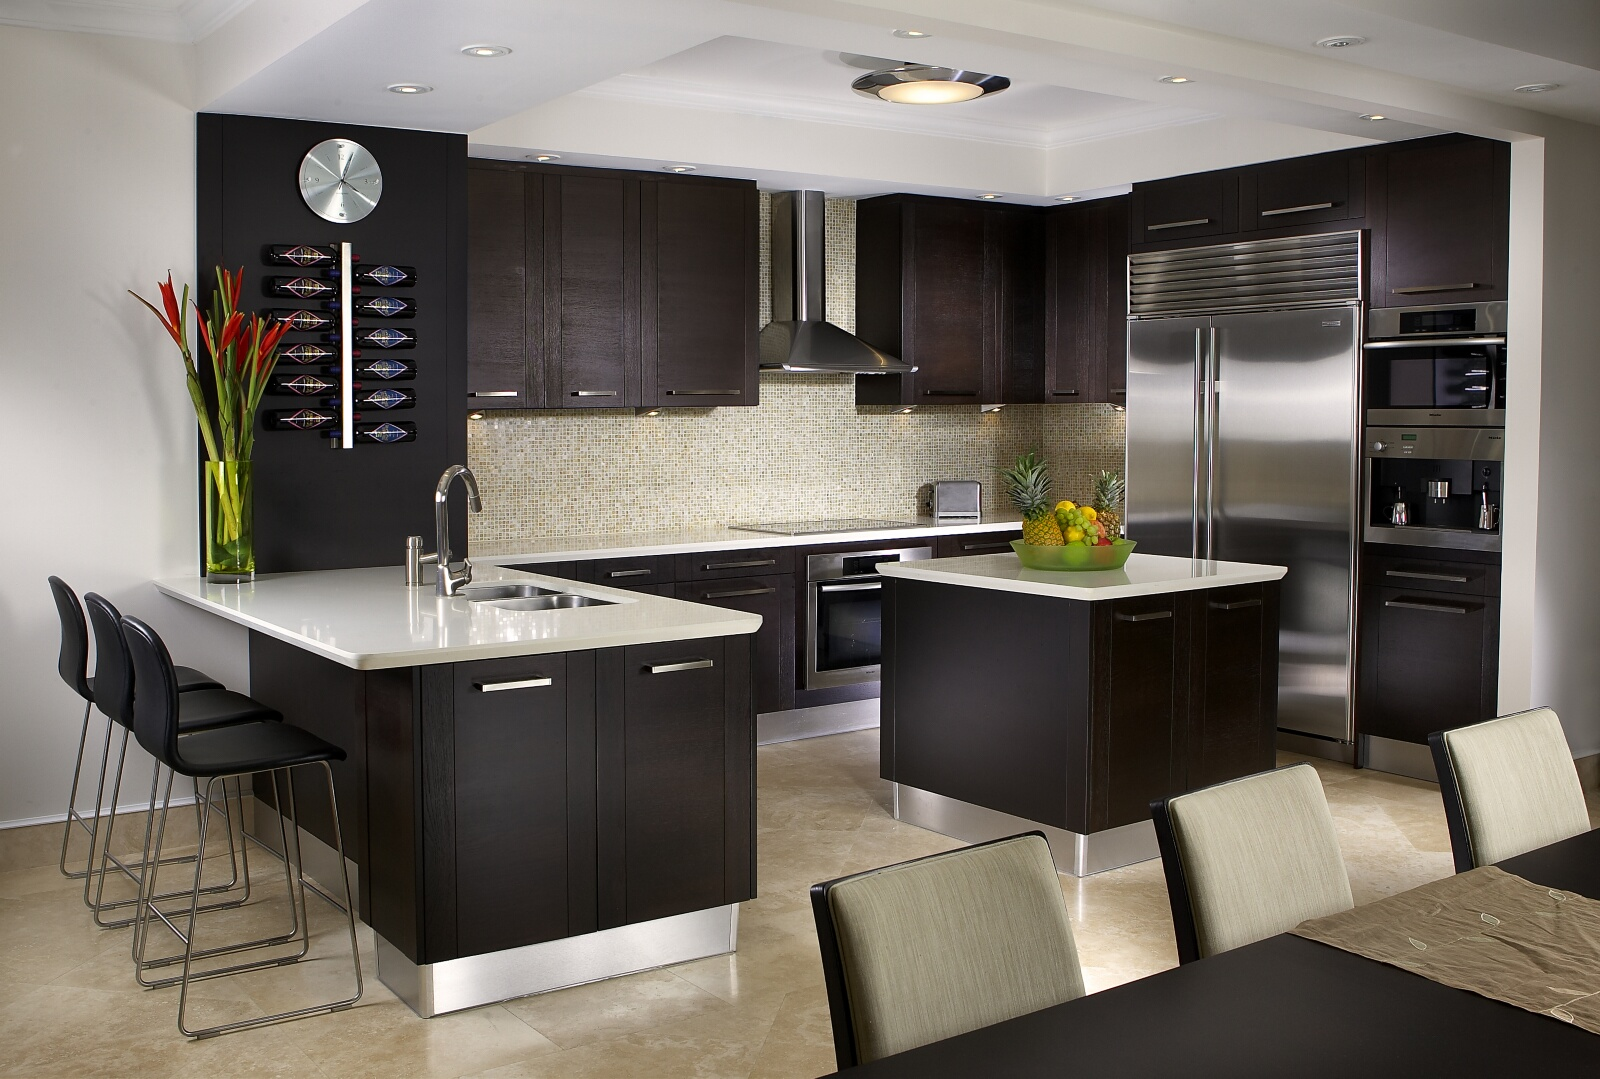 Kitchen interior design services miami florida for Kitchen design gallery